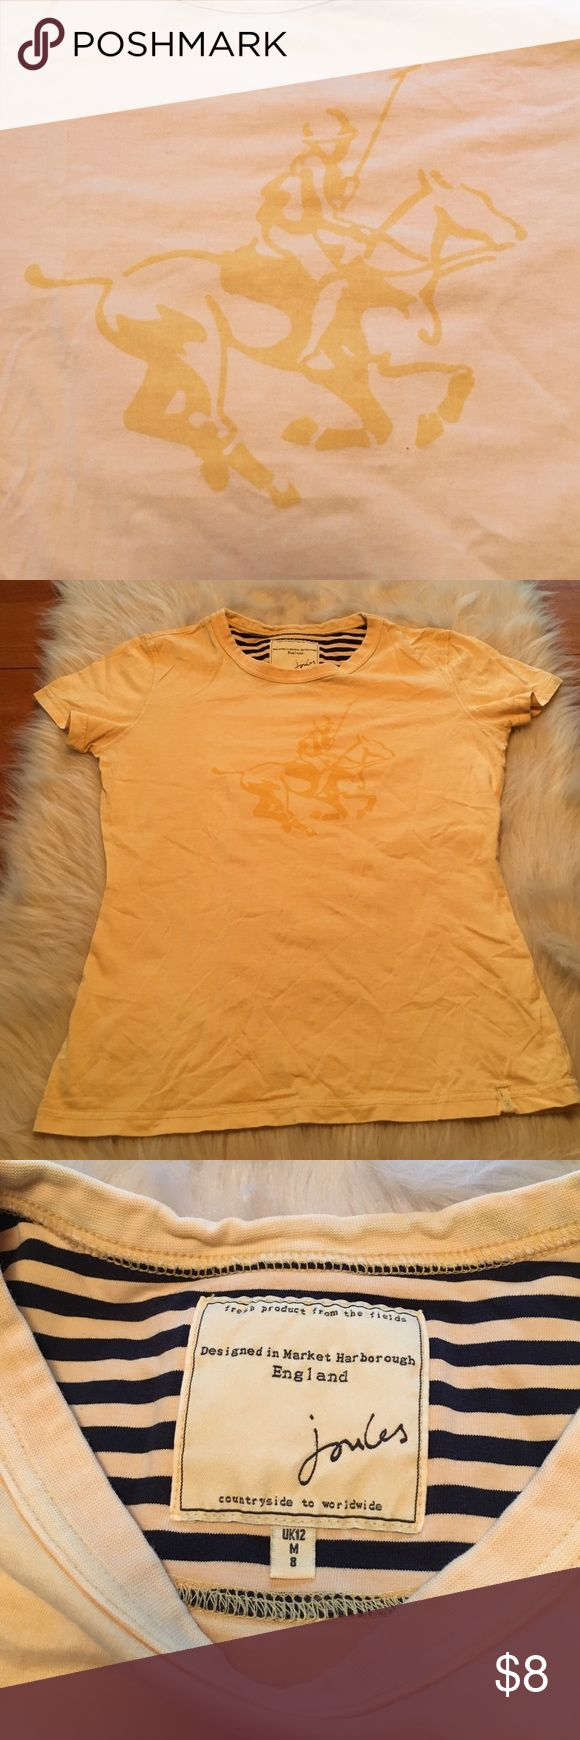 Joules shirt Pre loved joules shirt. Worn a handful of times. Still in good condition. No rips holes or stains. Made and designed in England. Polo horse on the front. Great color. Soft material. Joules Tops Tees - Short Sleeve